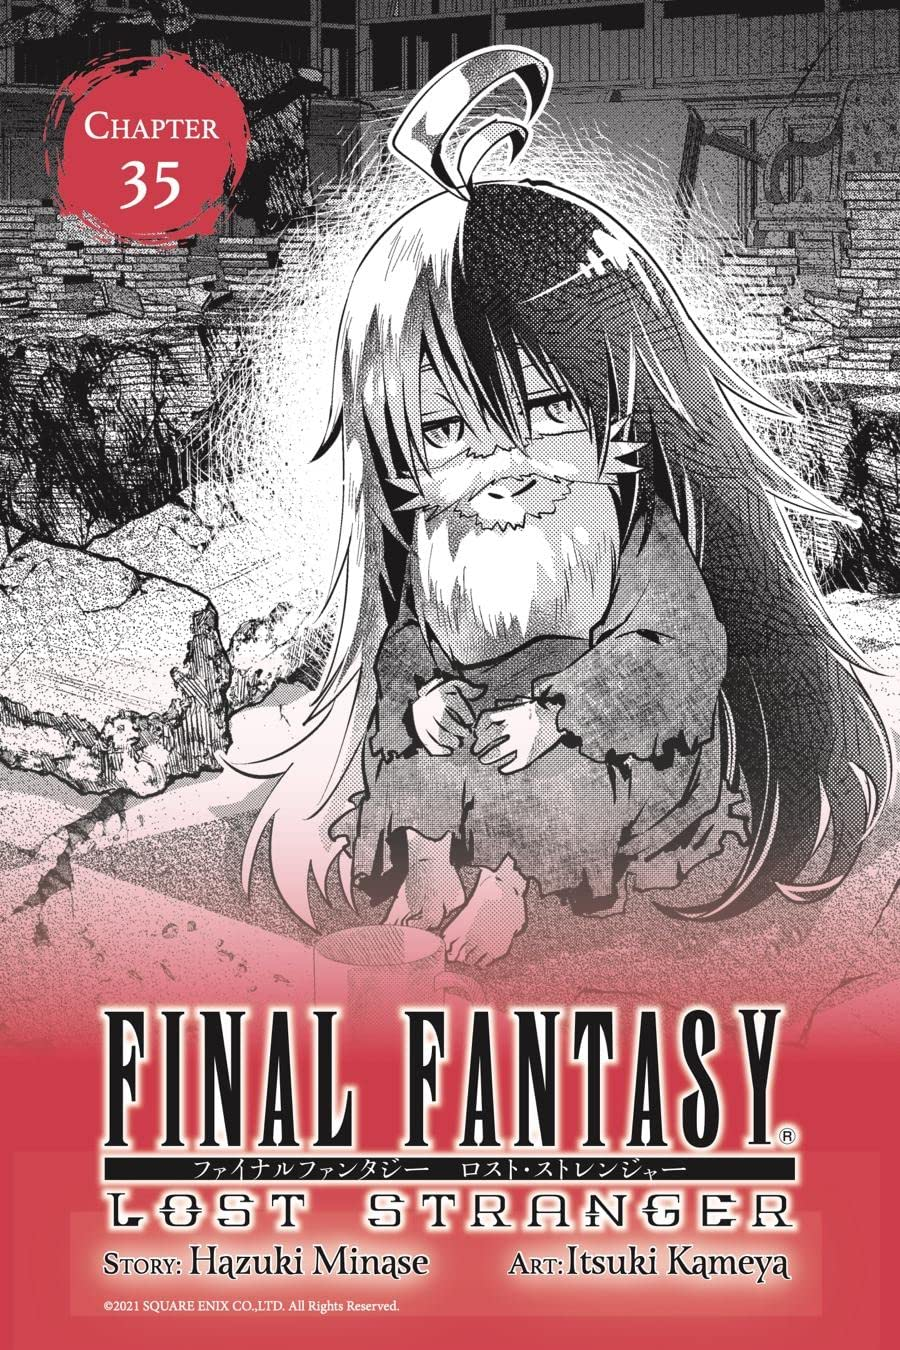 Final Fantasy Lost Stranger #35